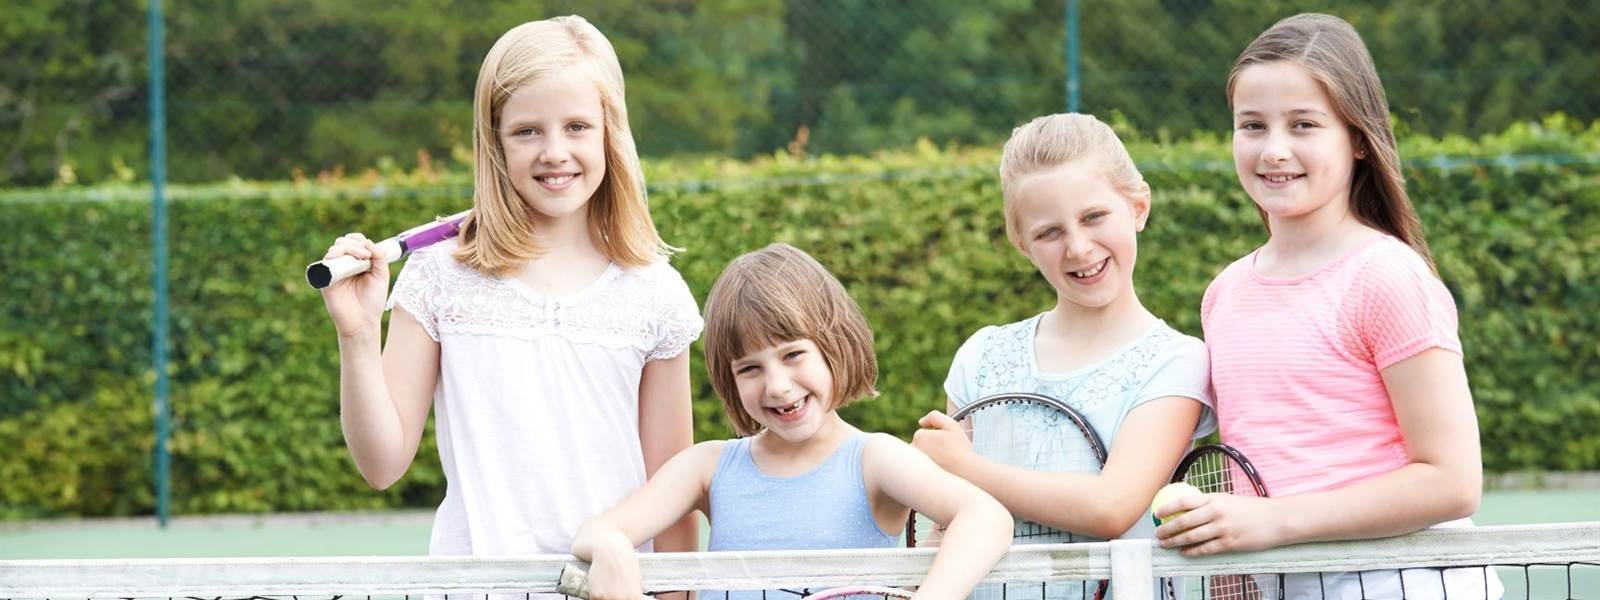 Small Tennis Group